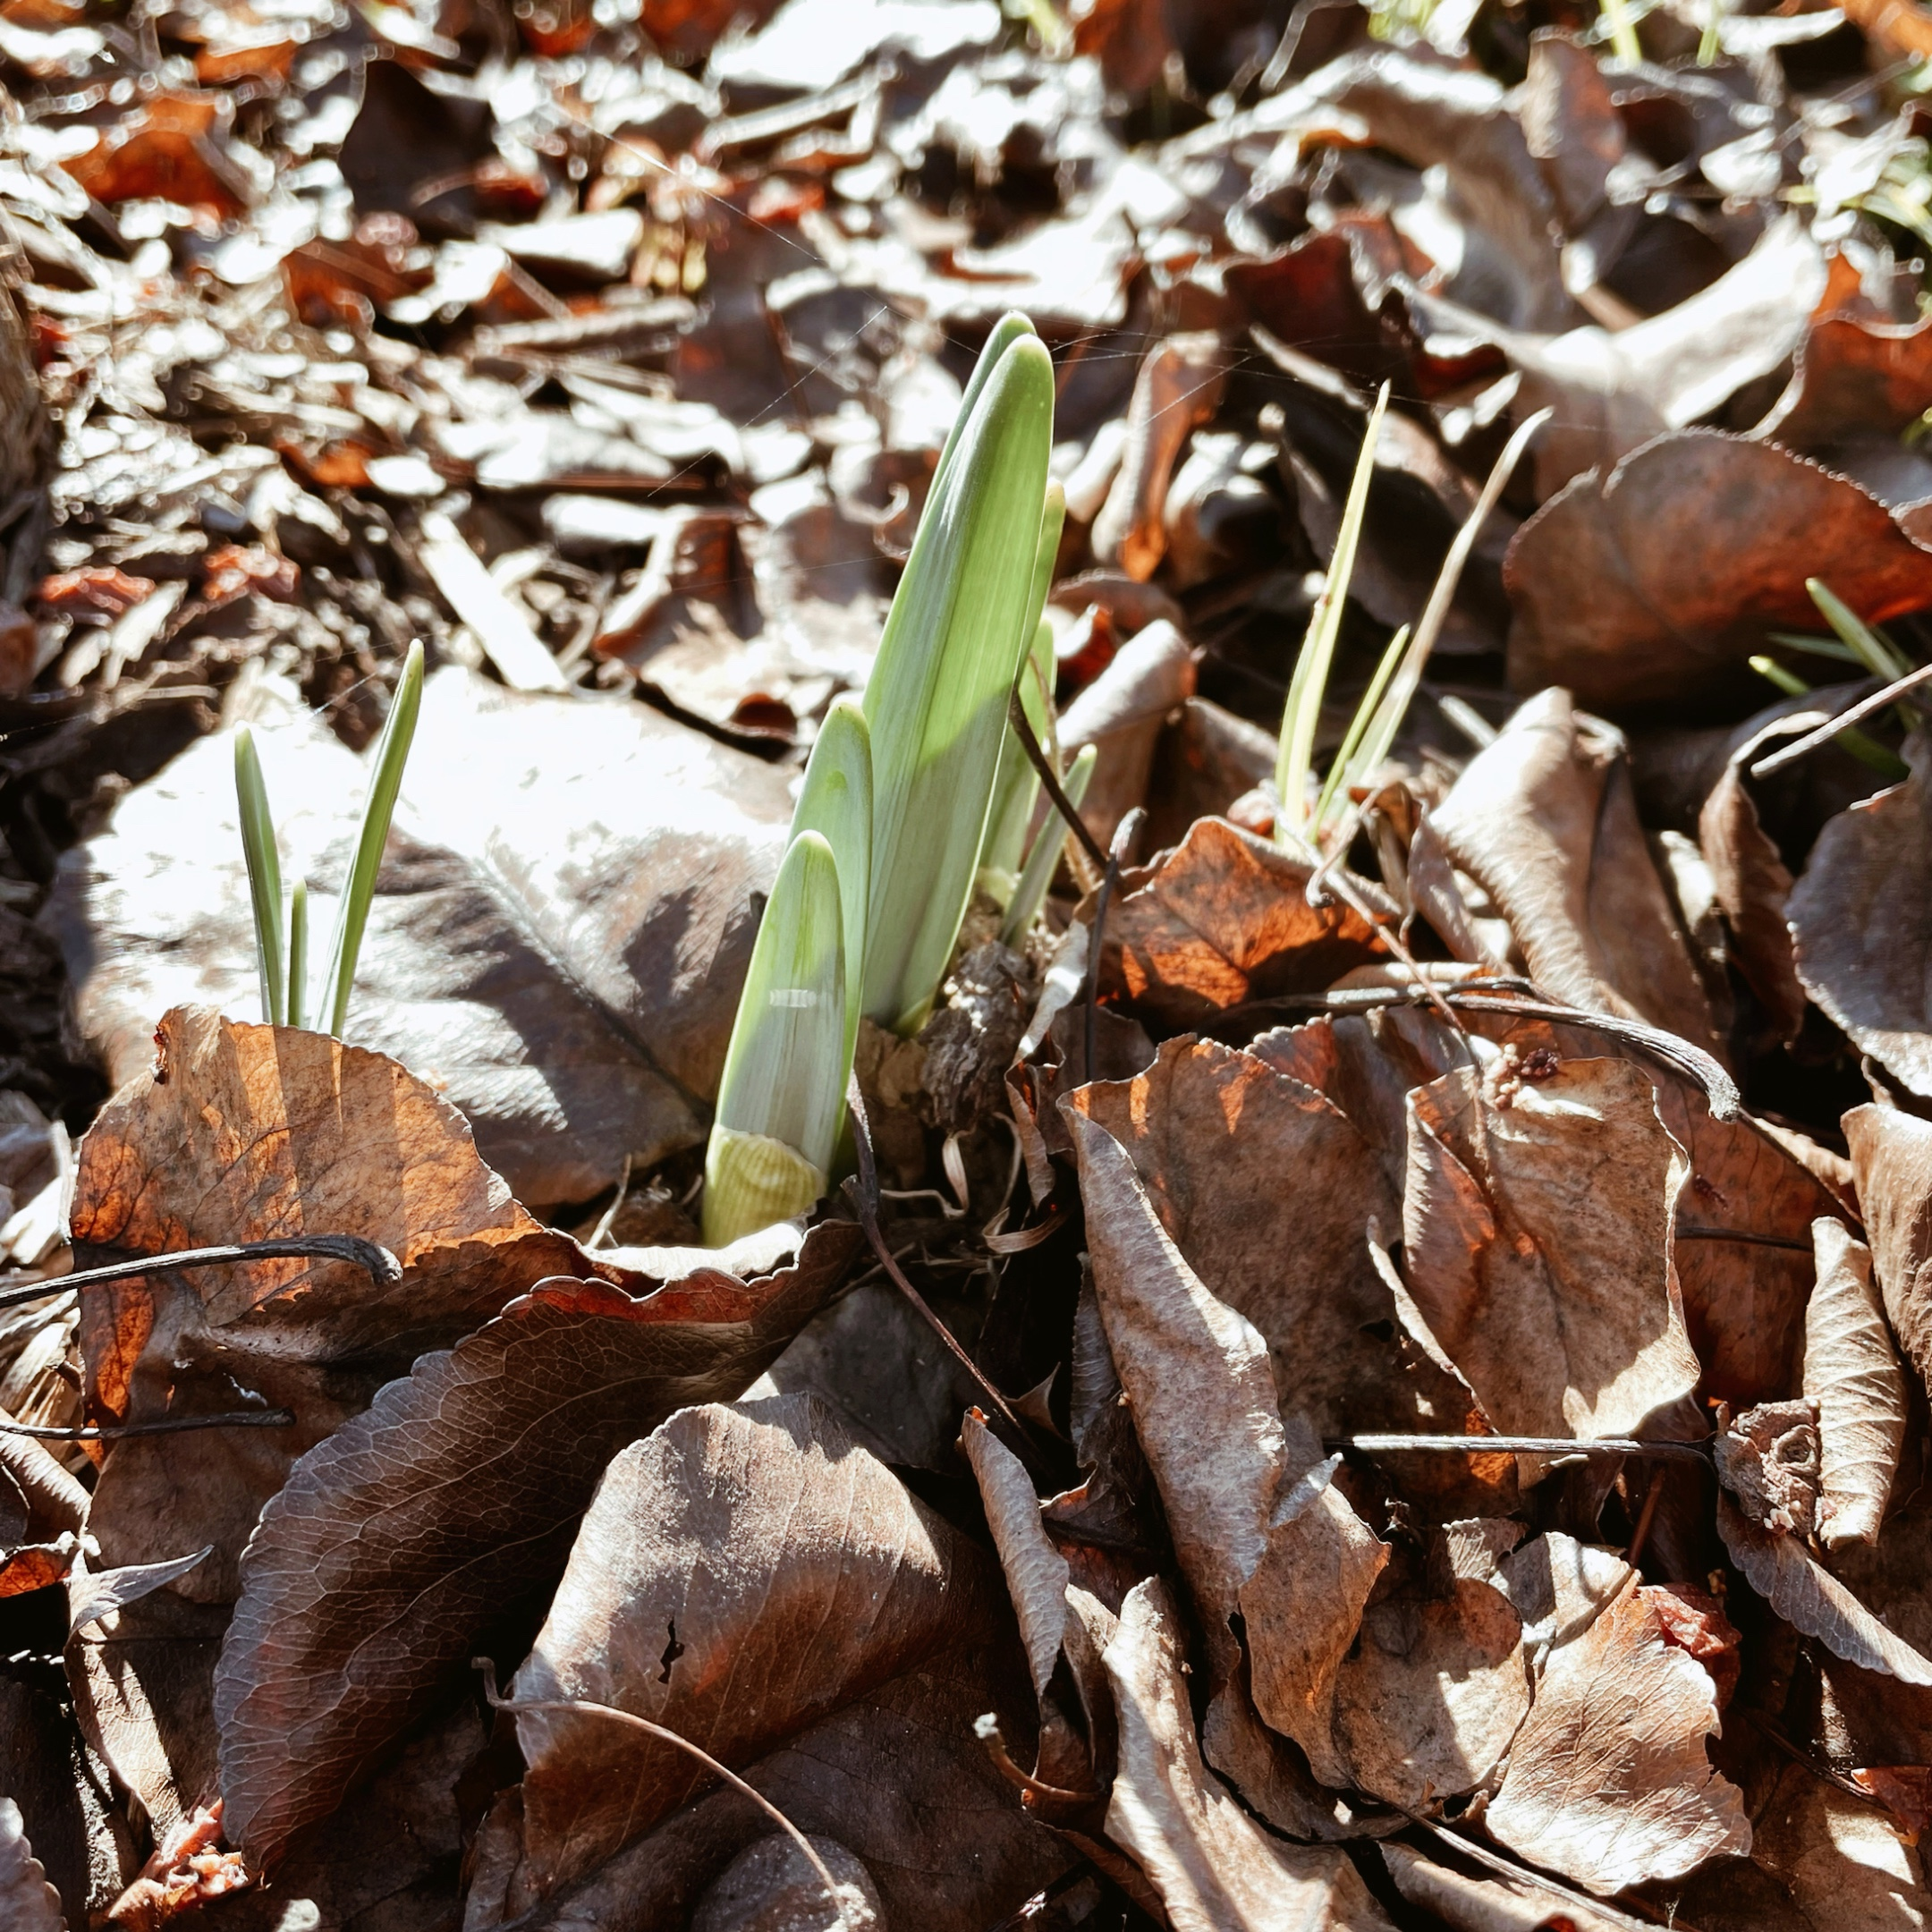 Daffodil stems poking up thrown brown autumnal leaves.